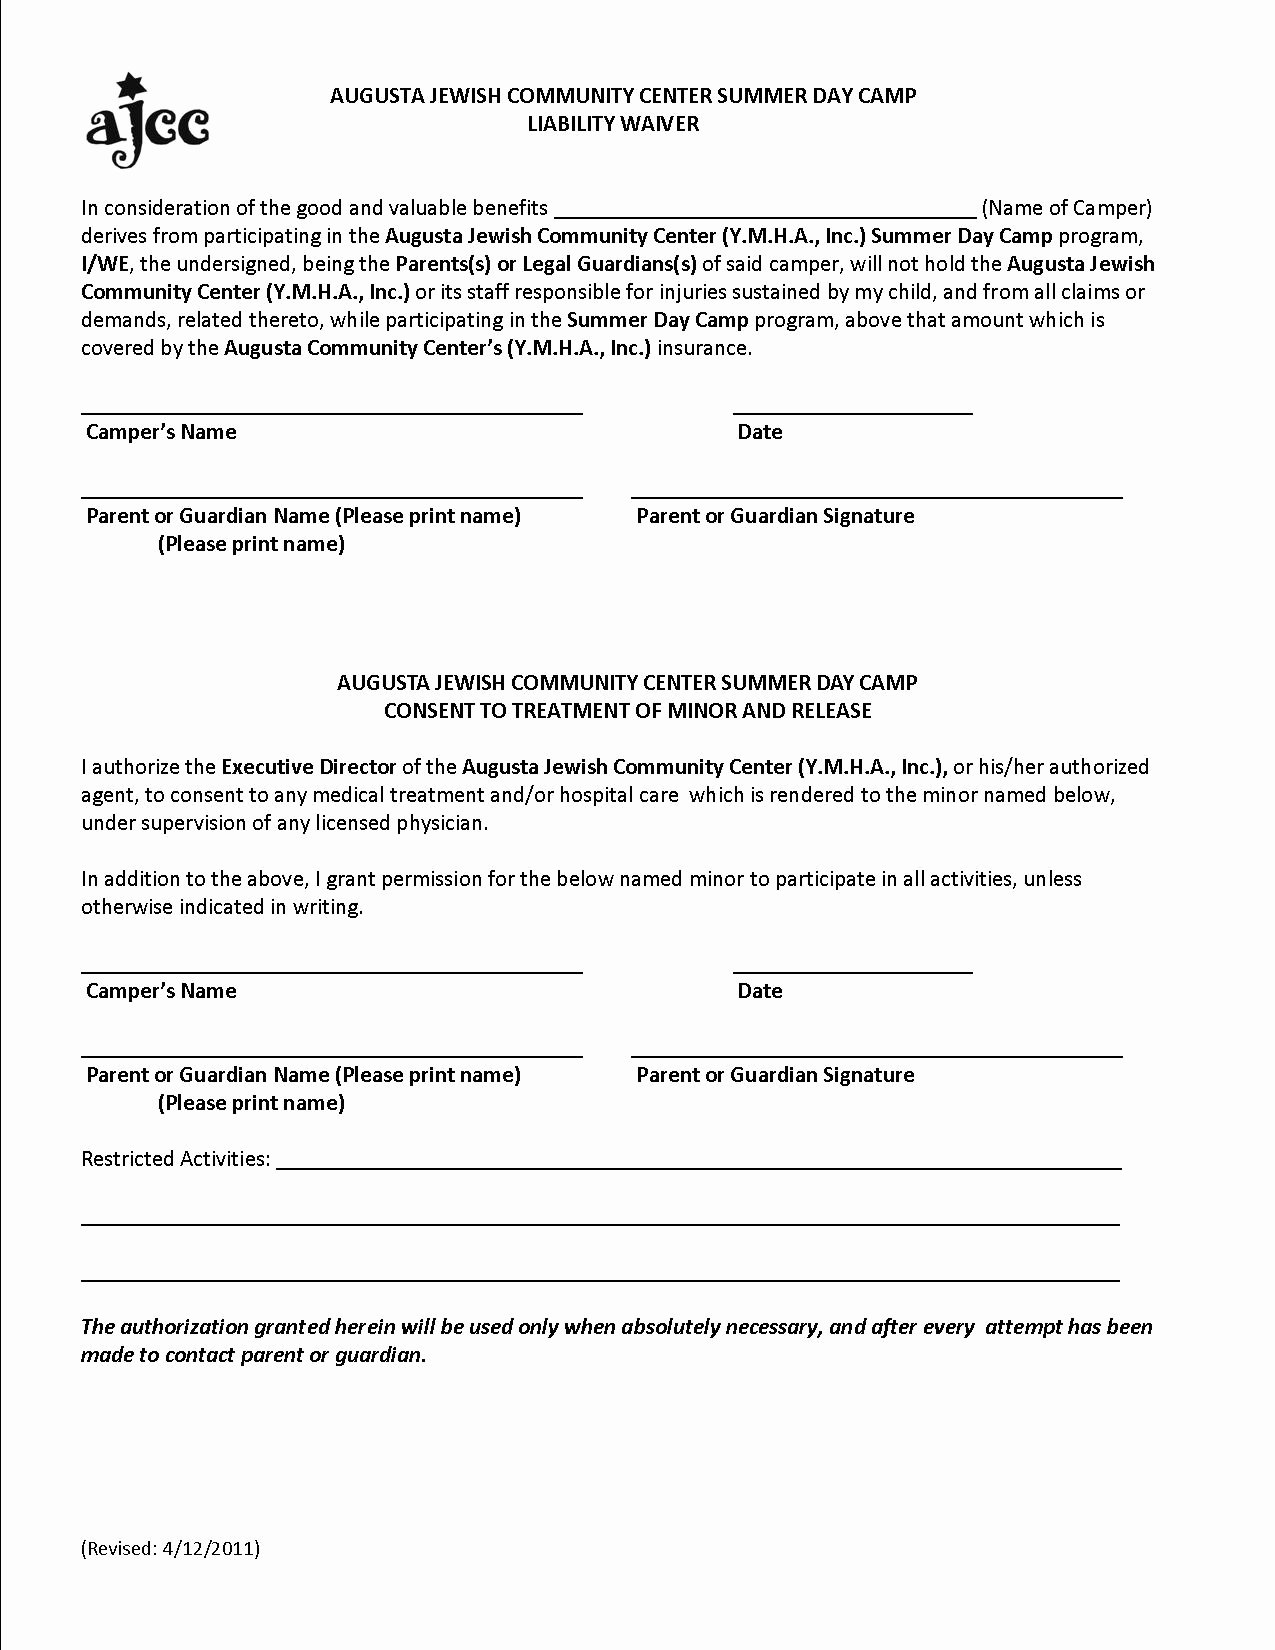 Image Release form Template Fresh Free Printable Liability form form Generic